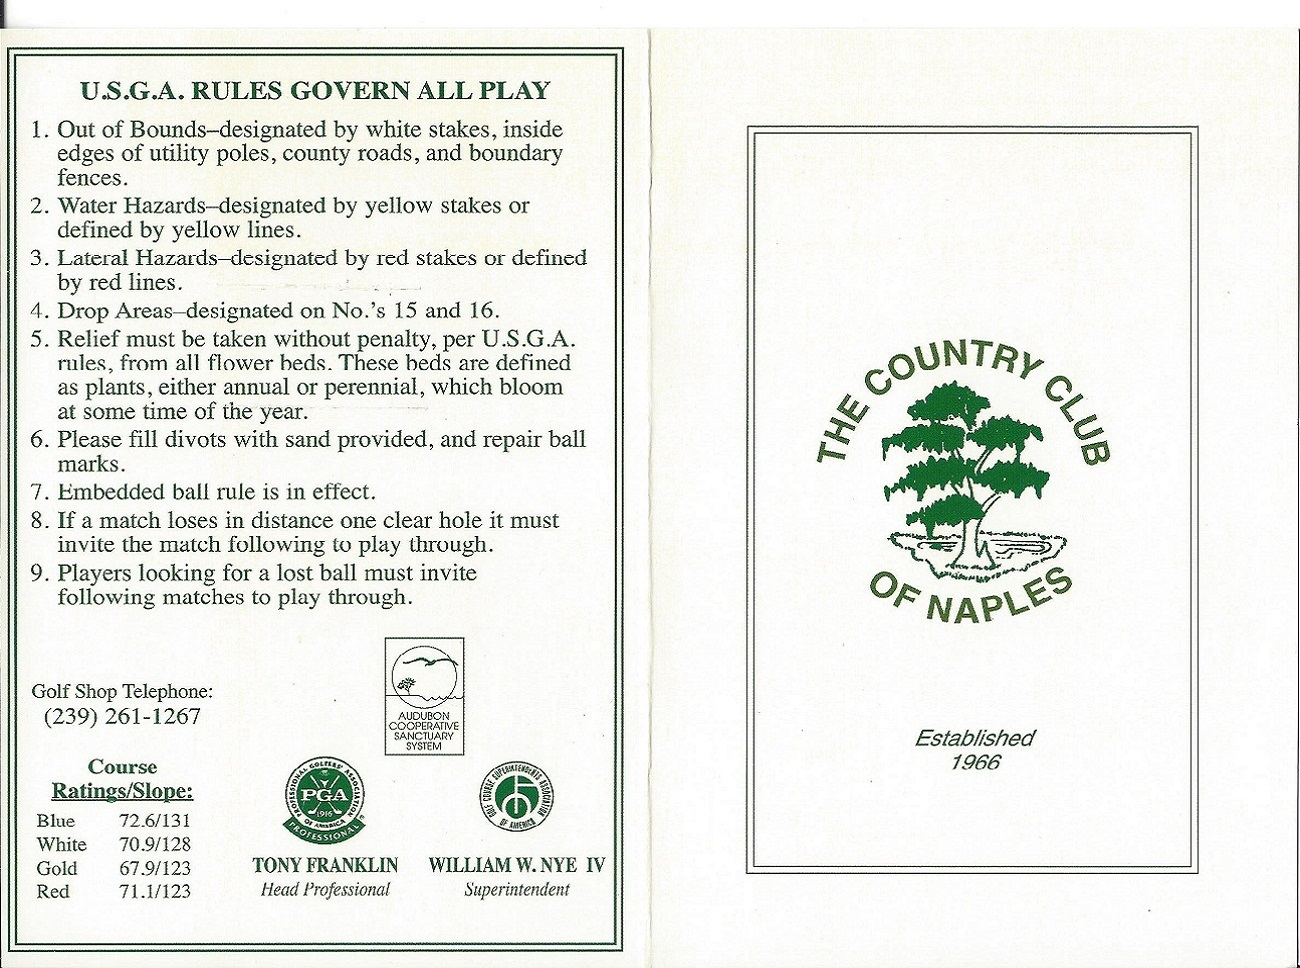 Score Card for the Country Club of Naples Front